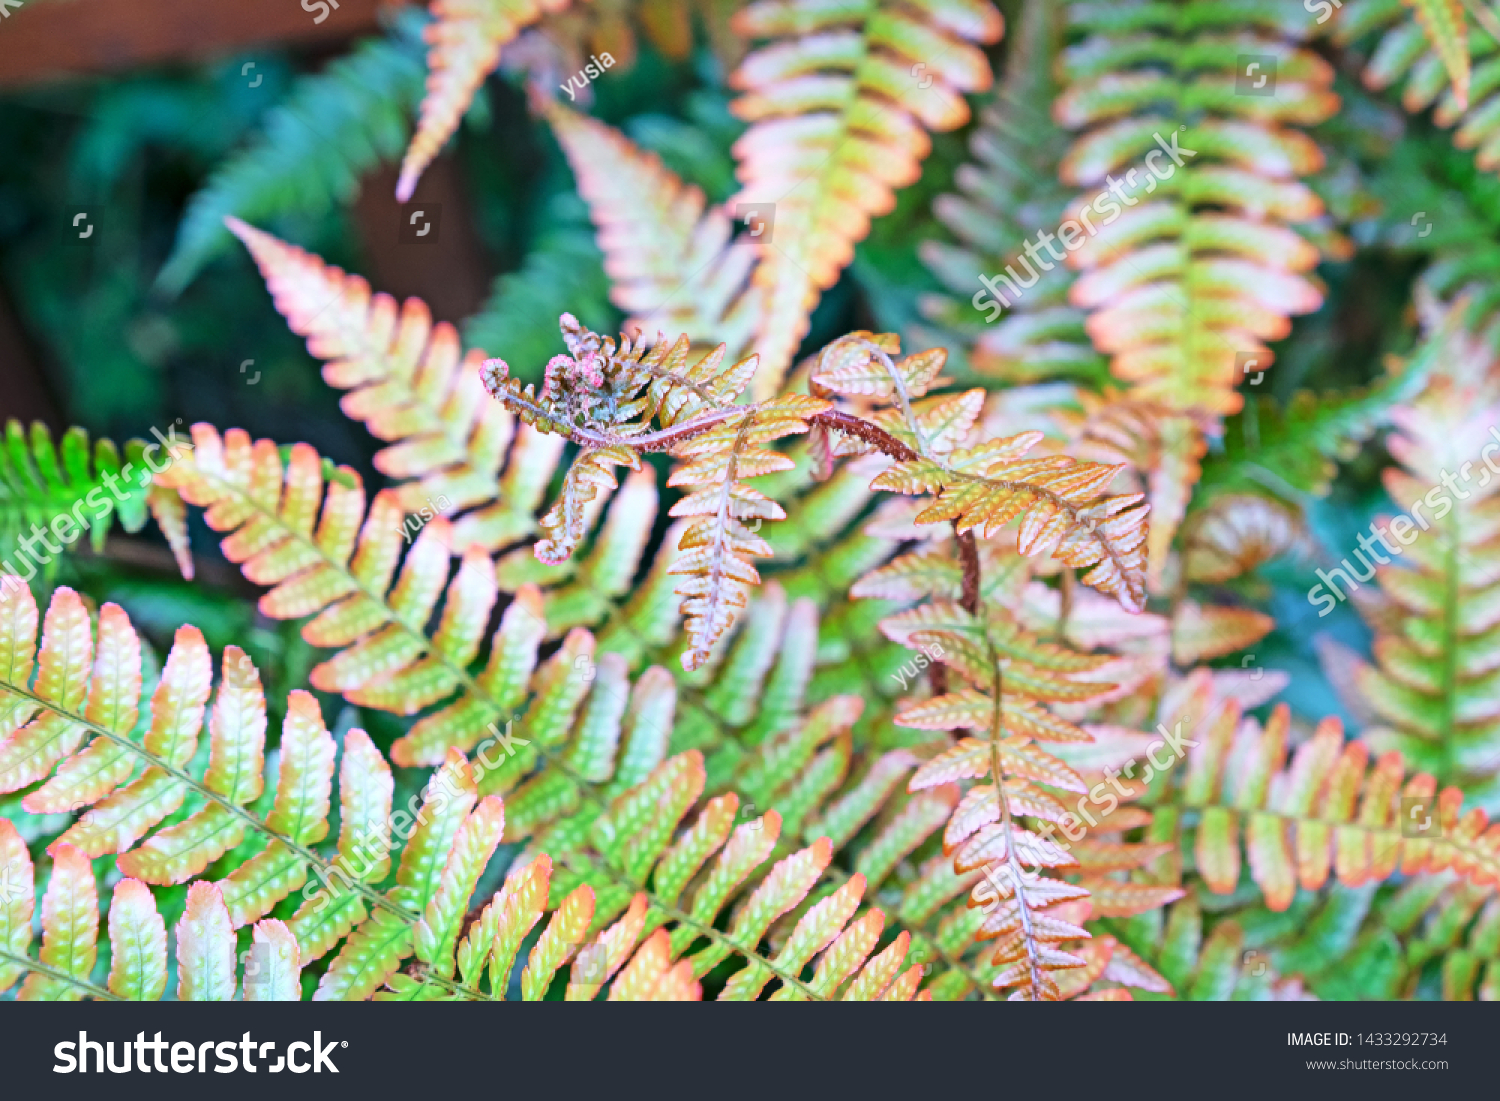 stock-photo-young-shoots-of-copper-shade